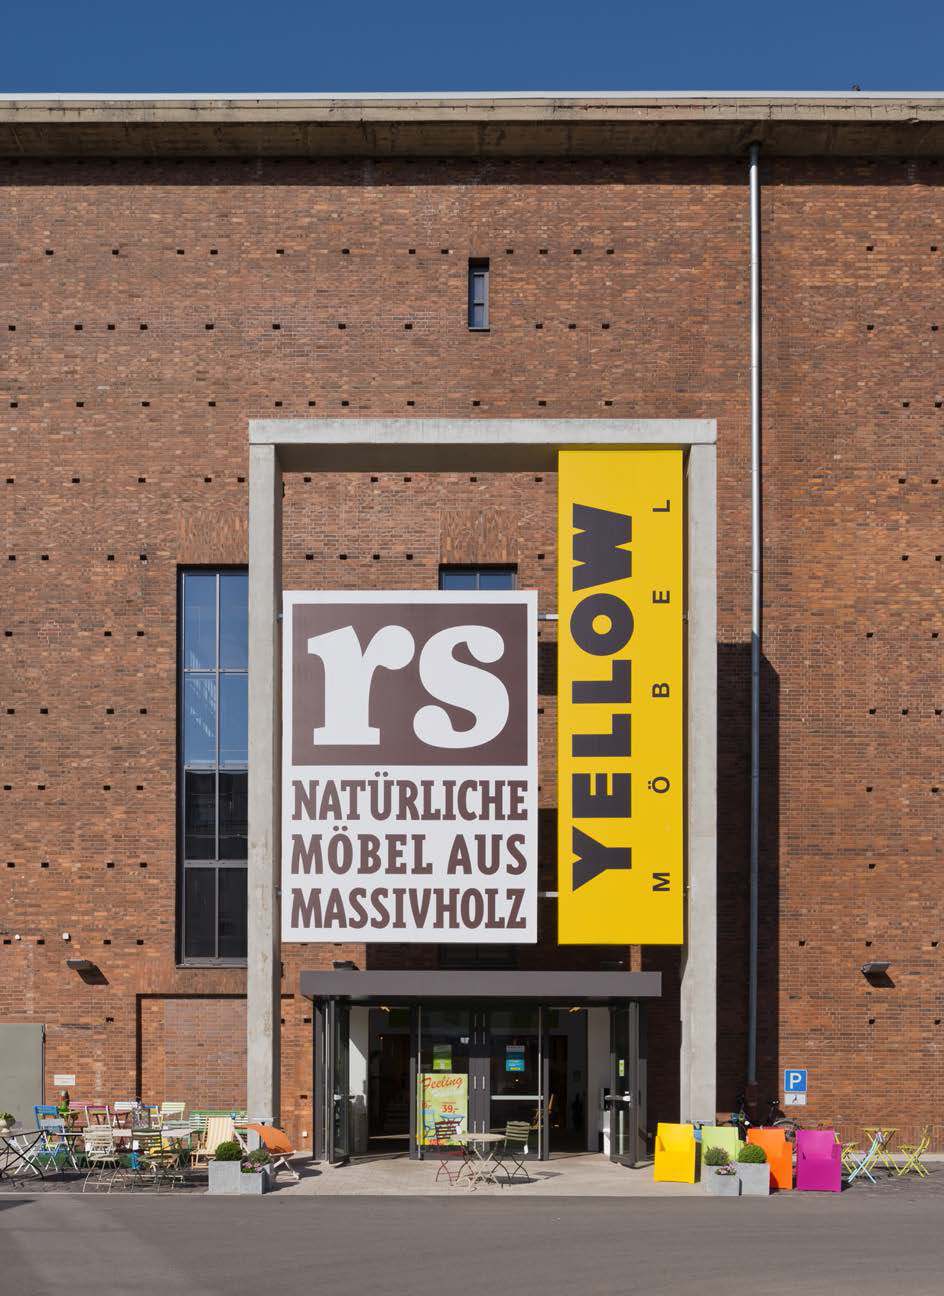 RS+Yellow Furniture Outlet. Photo by Olaf Mahlstedt. © BOLLES+WILSON